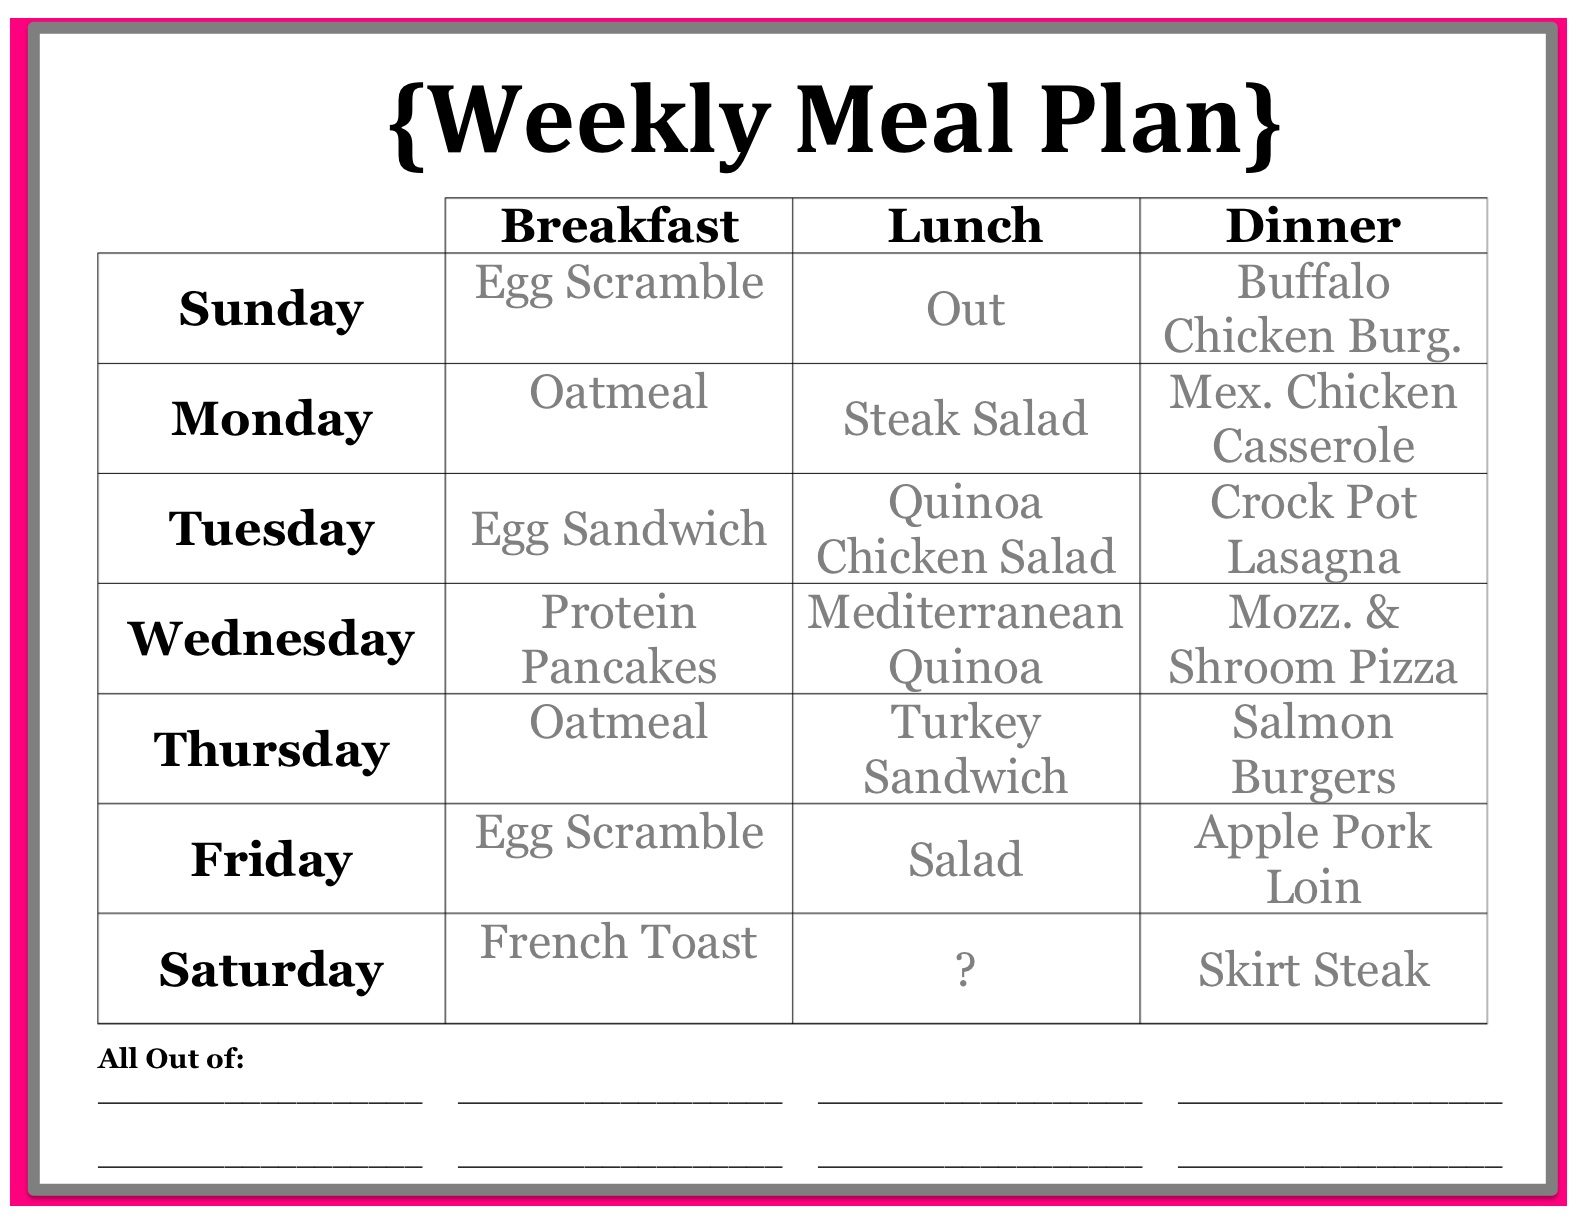 diet menu for monday through sunday